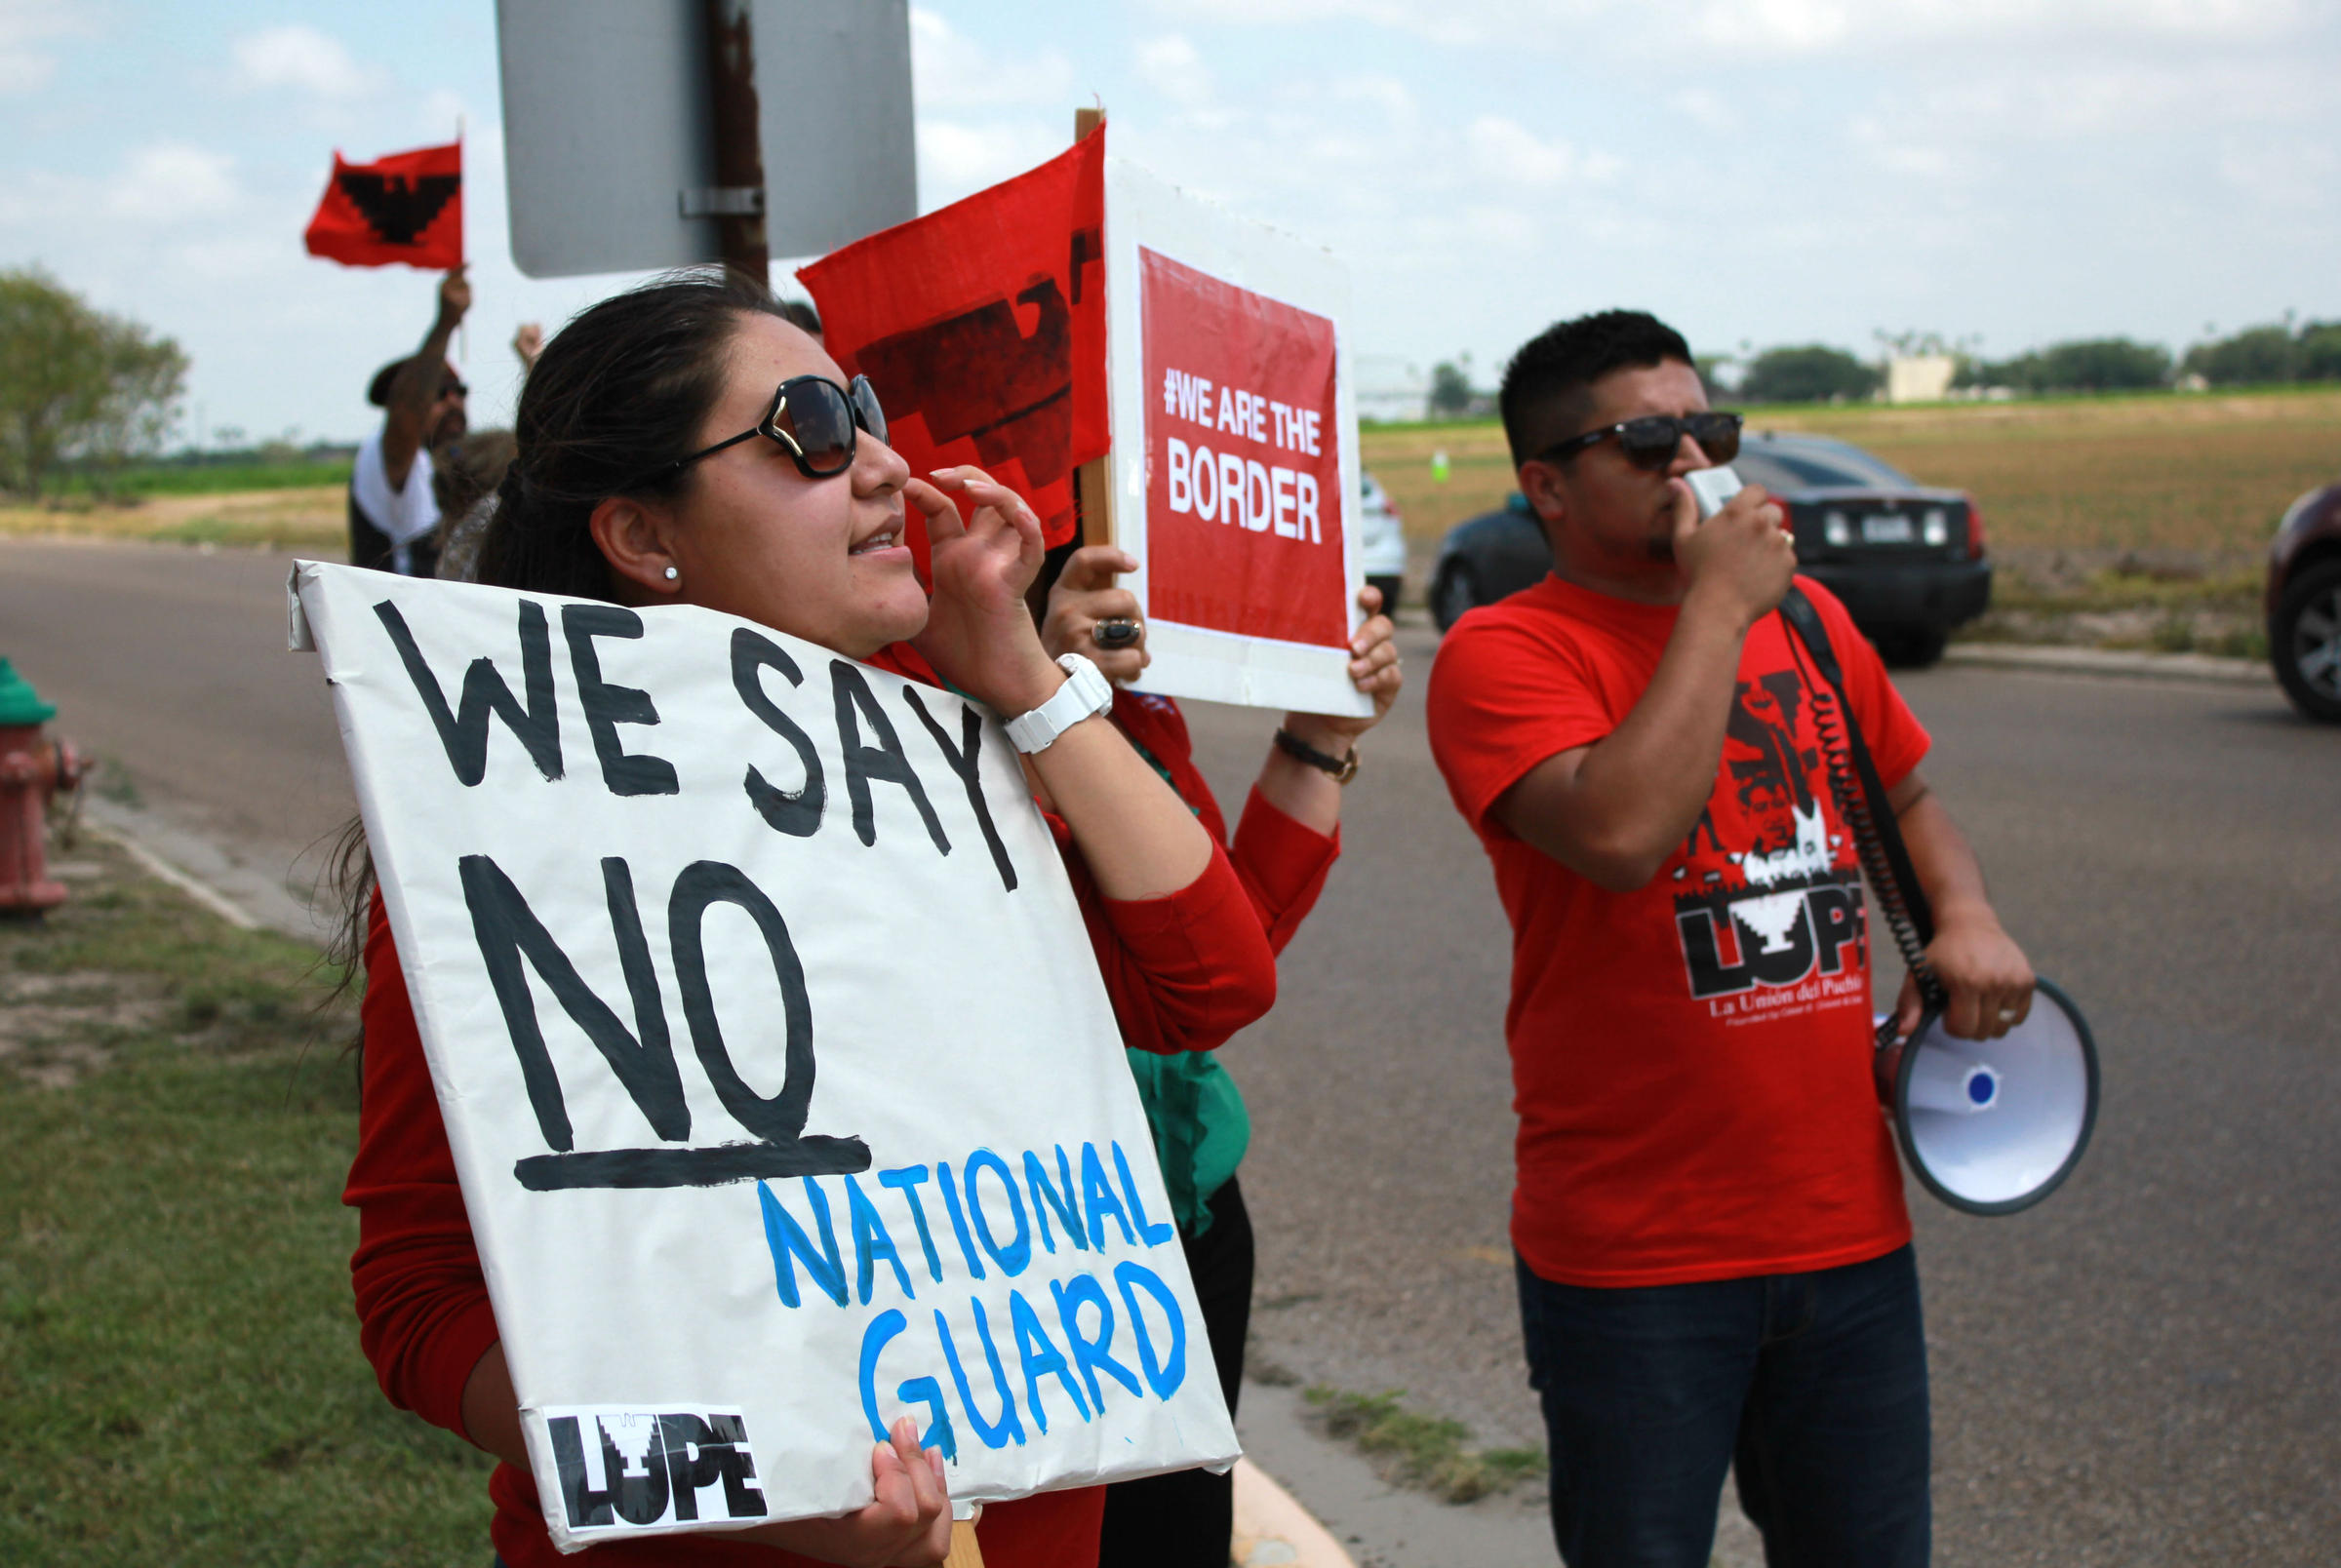 Protesters in Welasco gather as almost 800 National Guard troops are deployed to the U.S.-Mexico border.